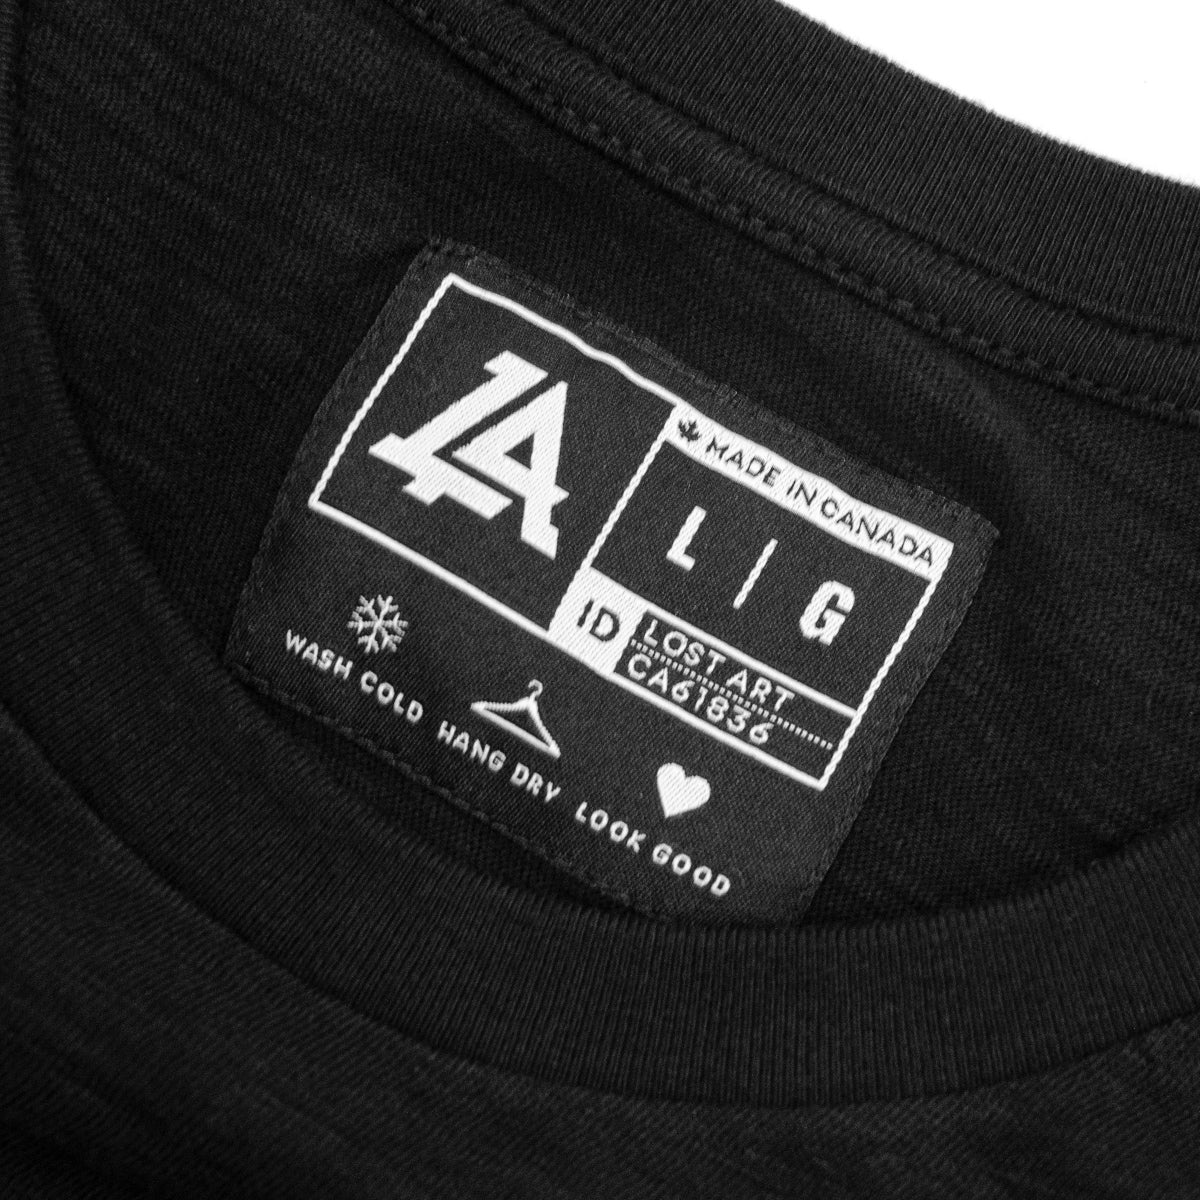 Lost Art Canada - black on black lost monogram tee inside tag view